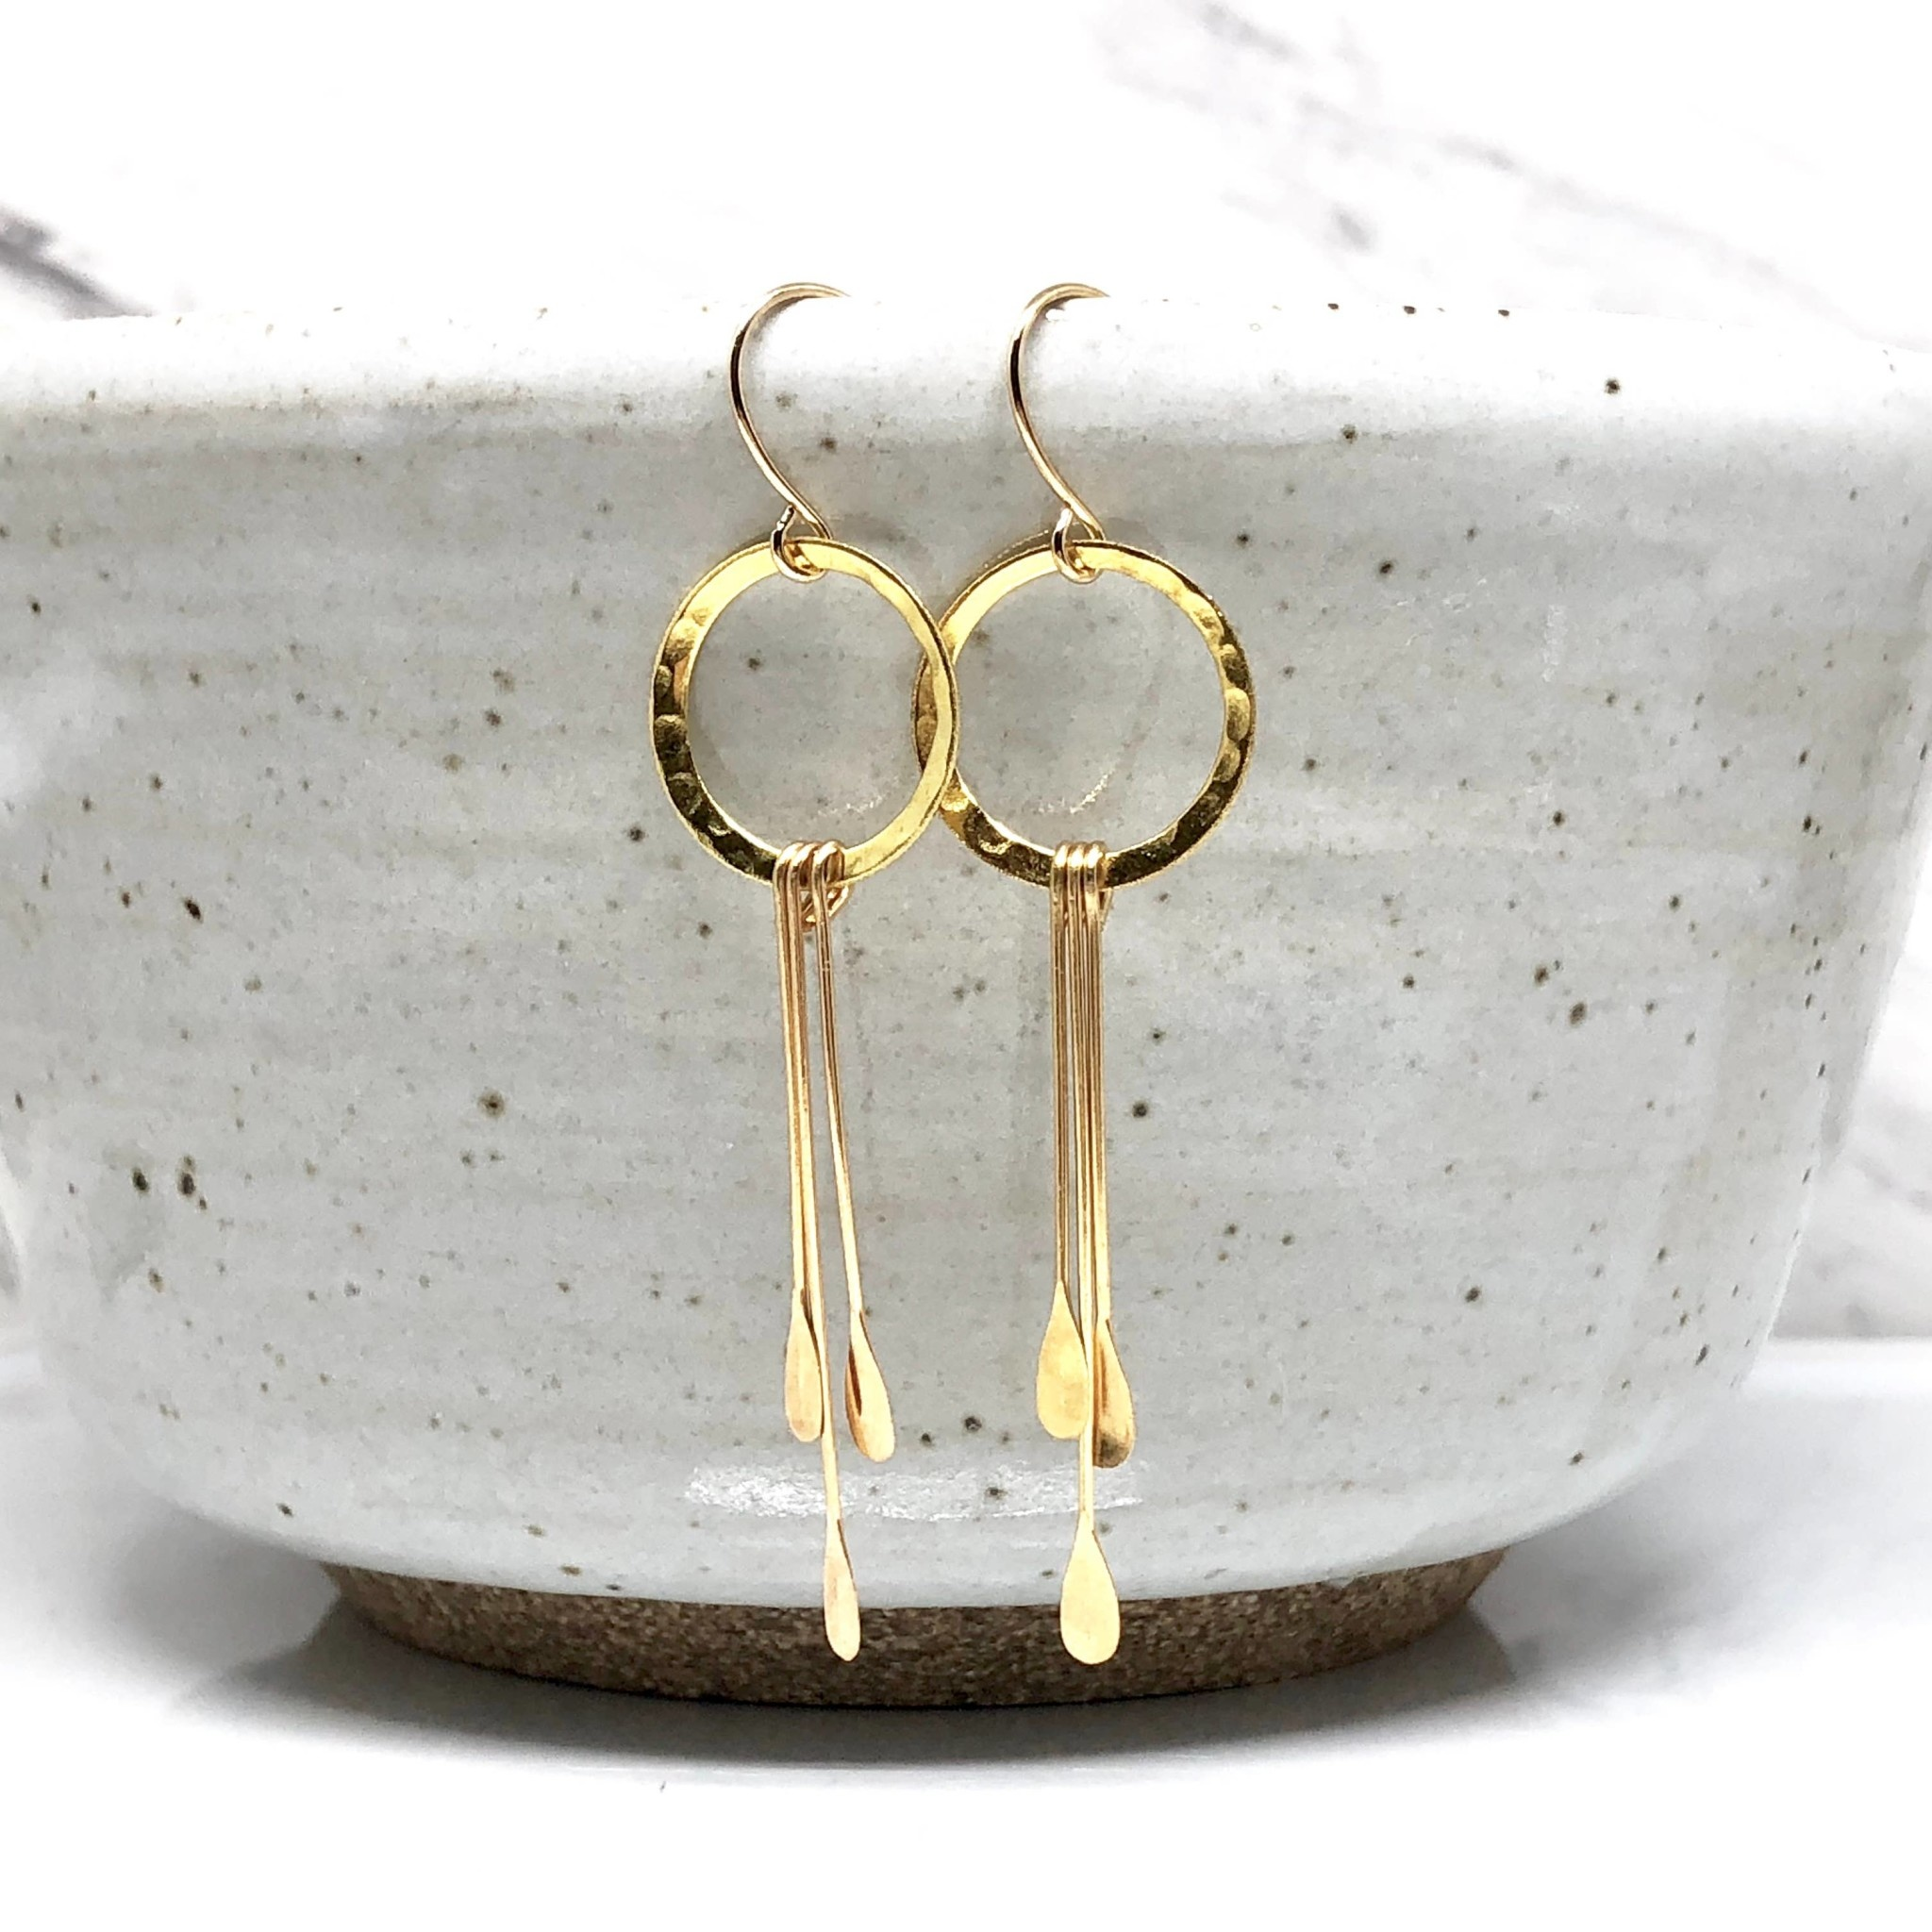 HADAS KOL MARA EARRINGS